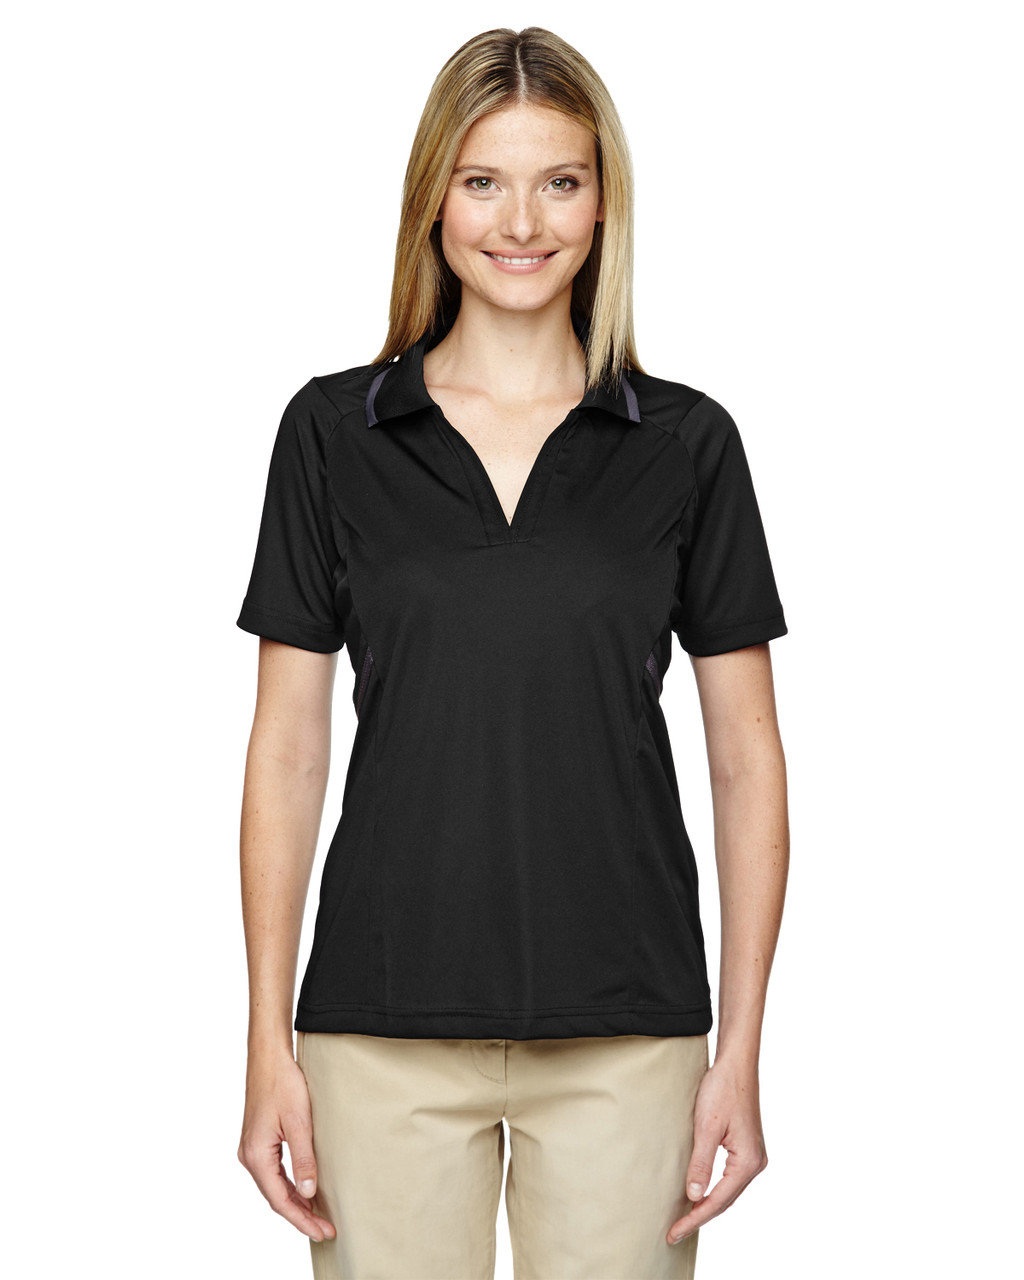 Black- 75118 Ash City - Extreme Eperformance Propel Interlock Polo Shirt with Contrast Tape | BlankClothing.ca